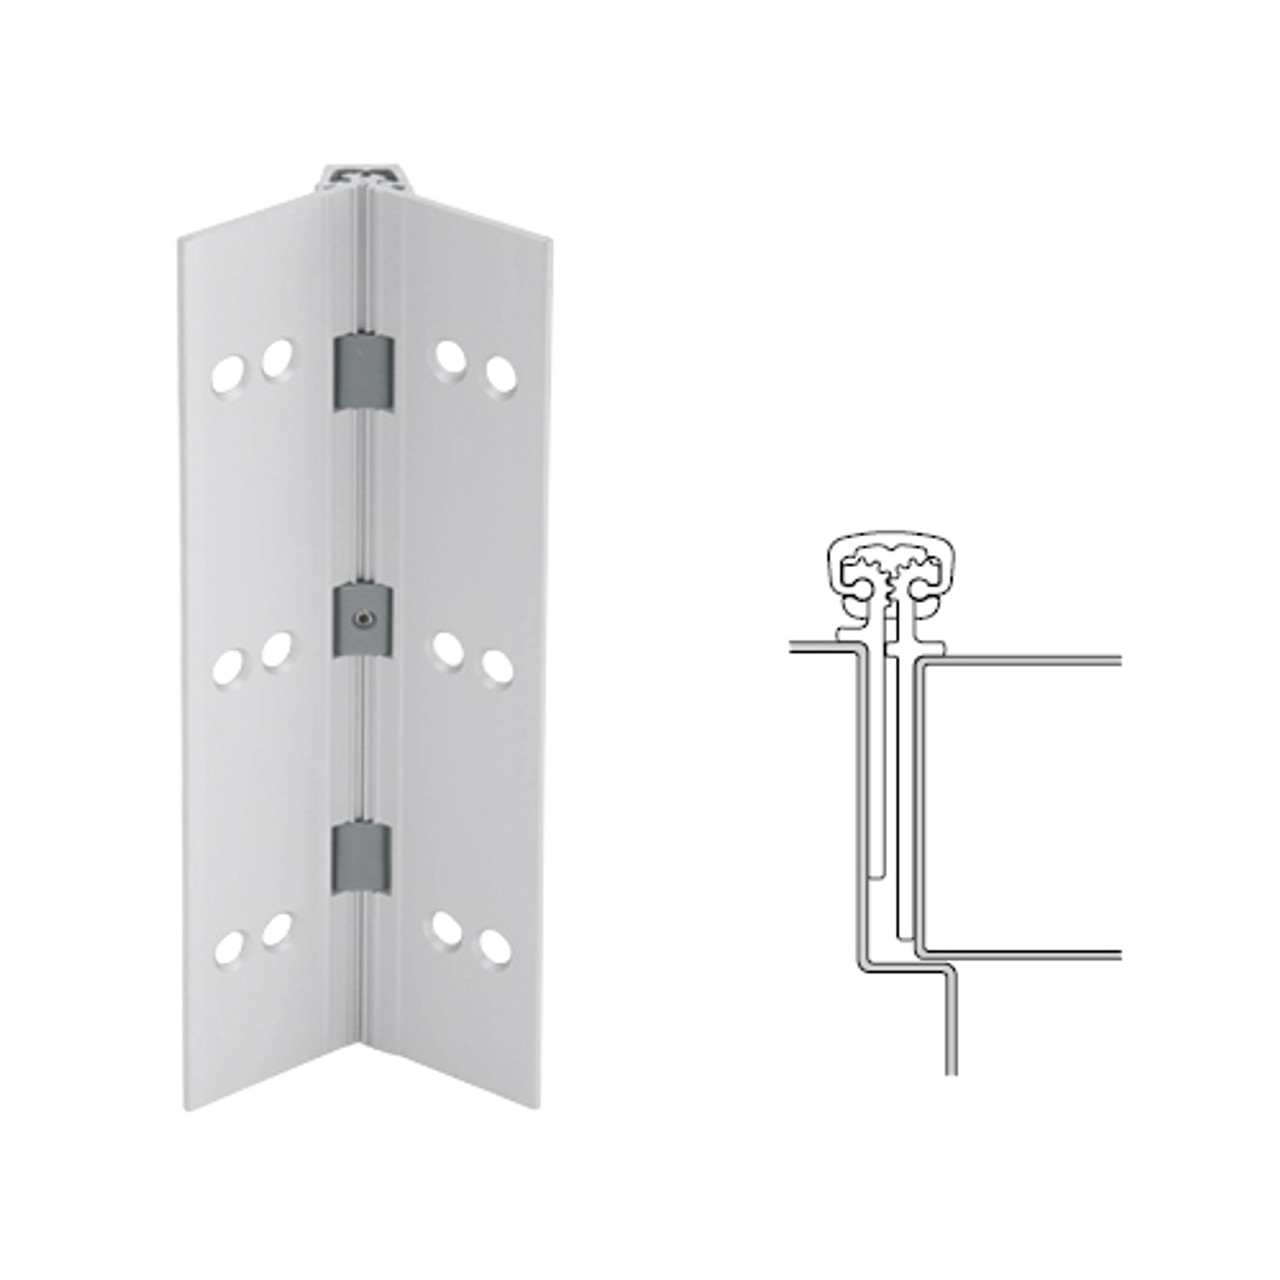 026XY-US28-85-EPT IVES Full Mortise Continuous Geared Hinges with Electrical Power Transfer Prep in Satin Aluminum